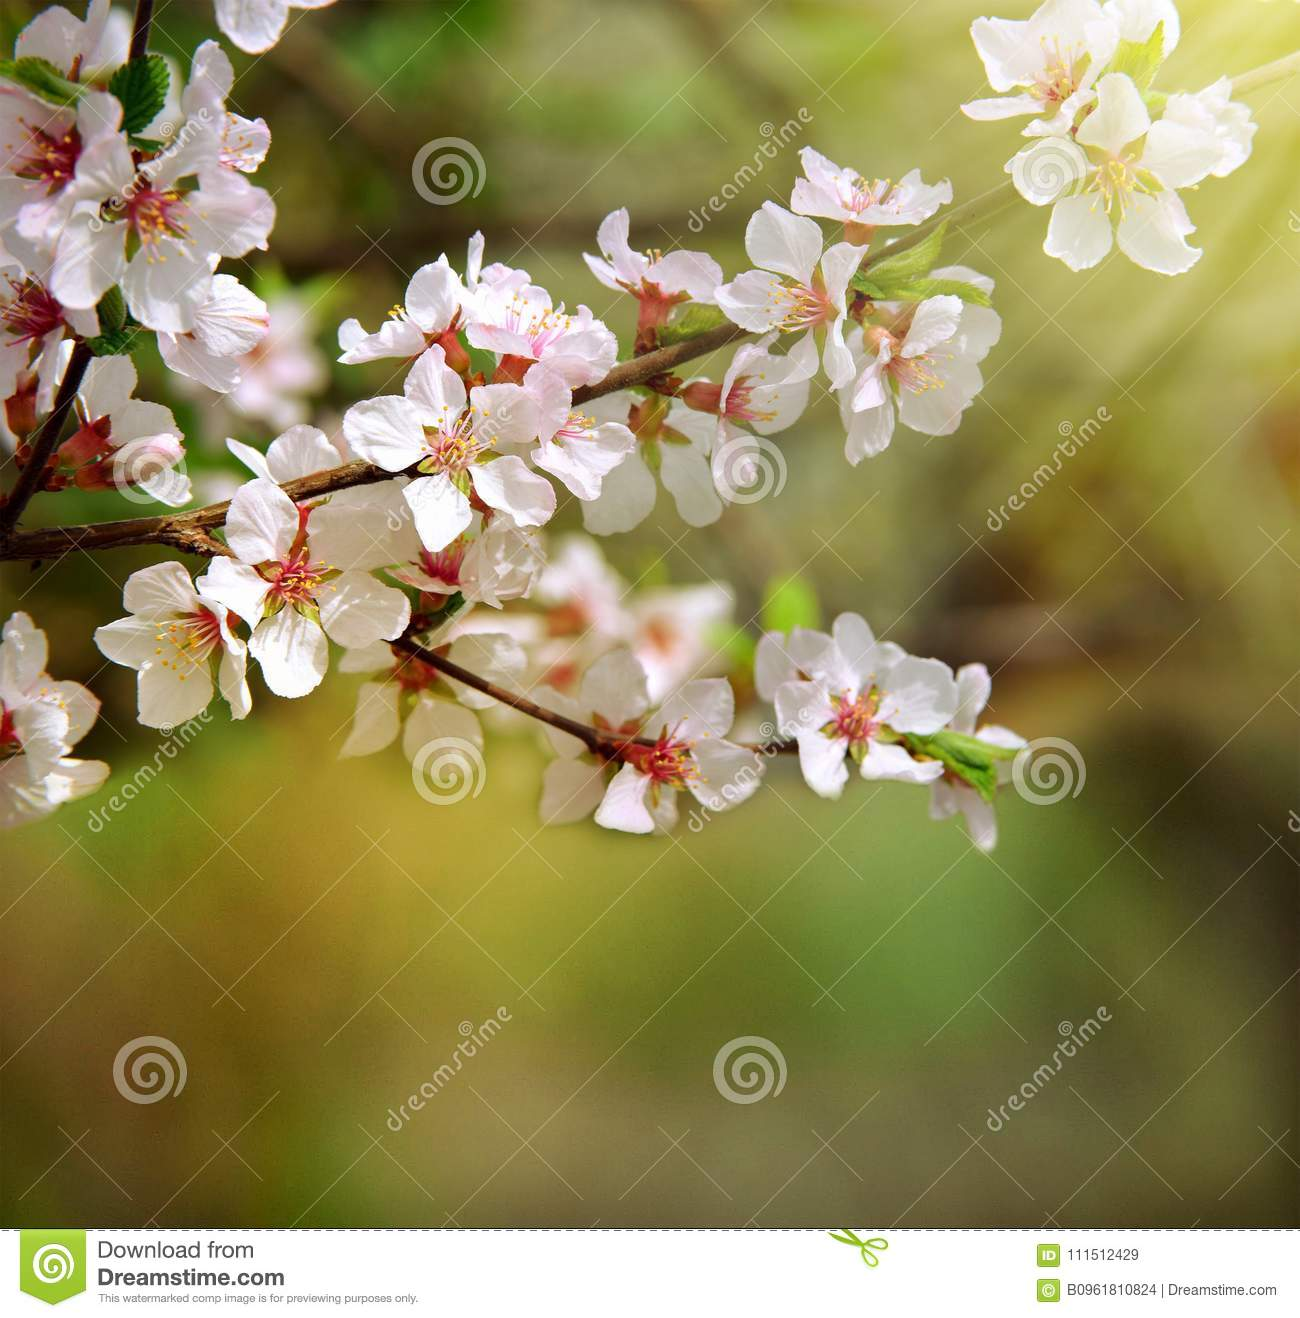 The Cherry Trees Are Blooming White Flowers White Cherry Blos Stock